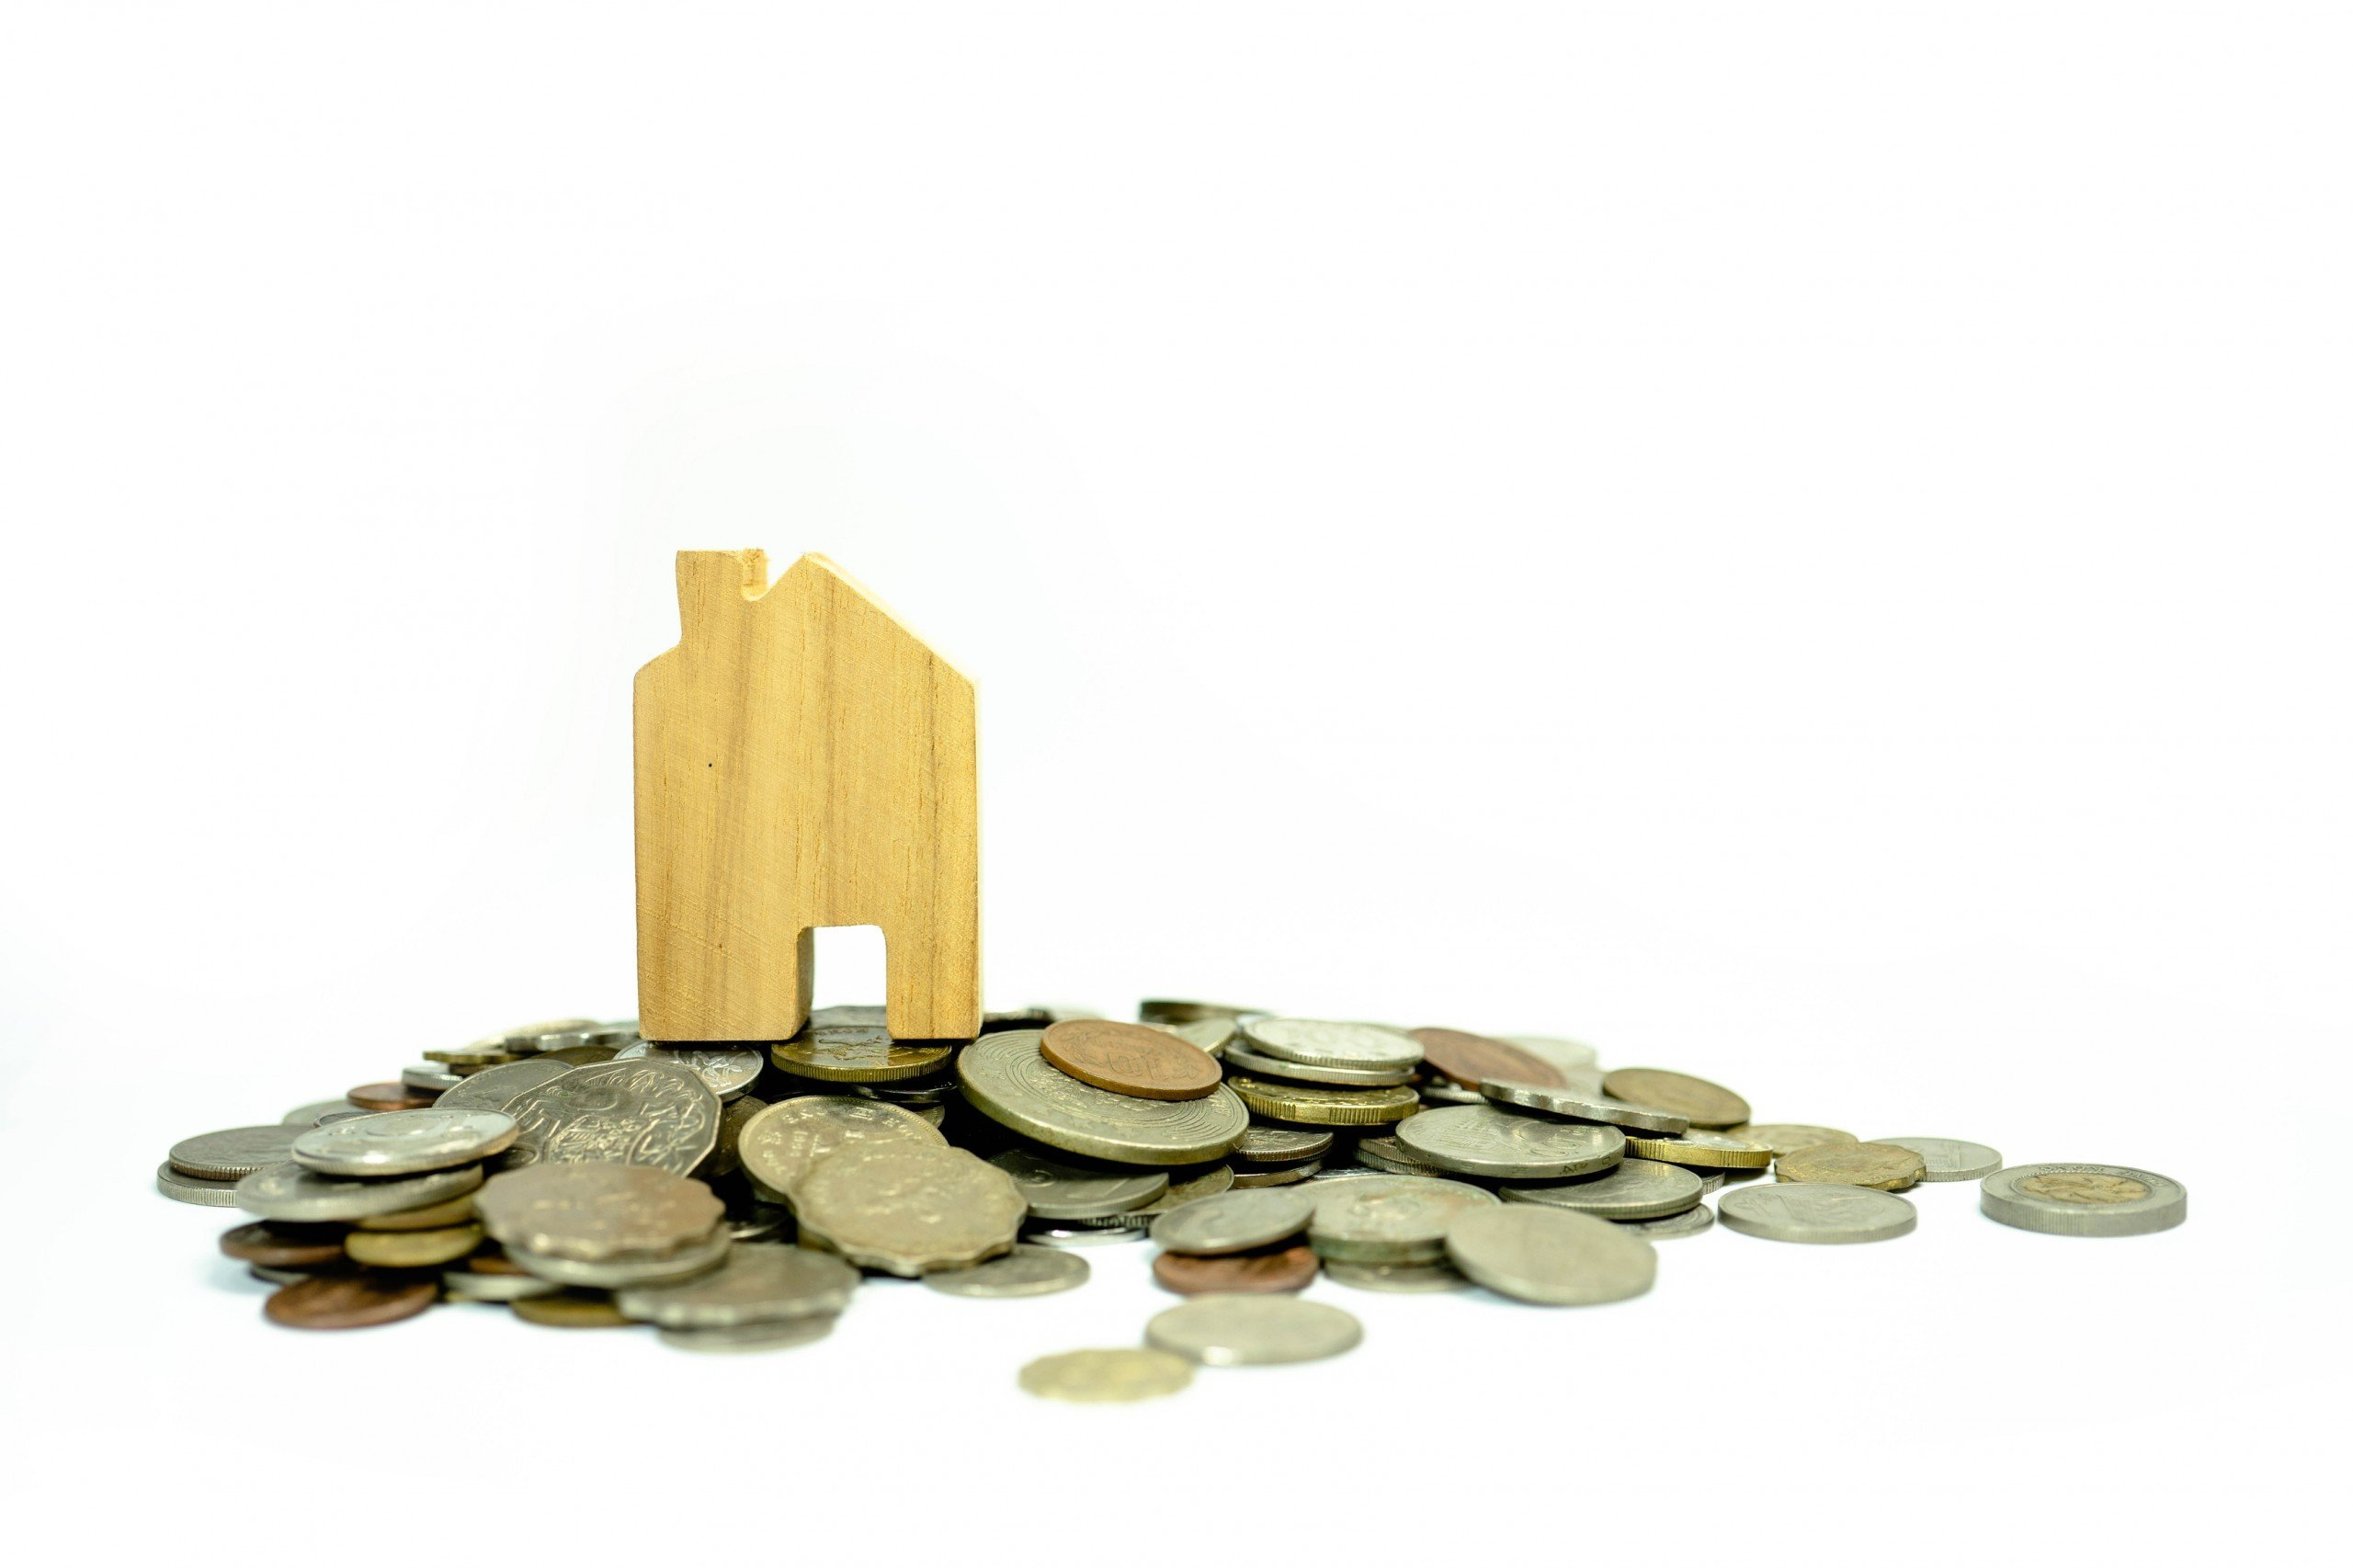 Wooden house with many coins by its feet